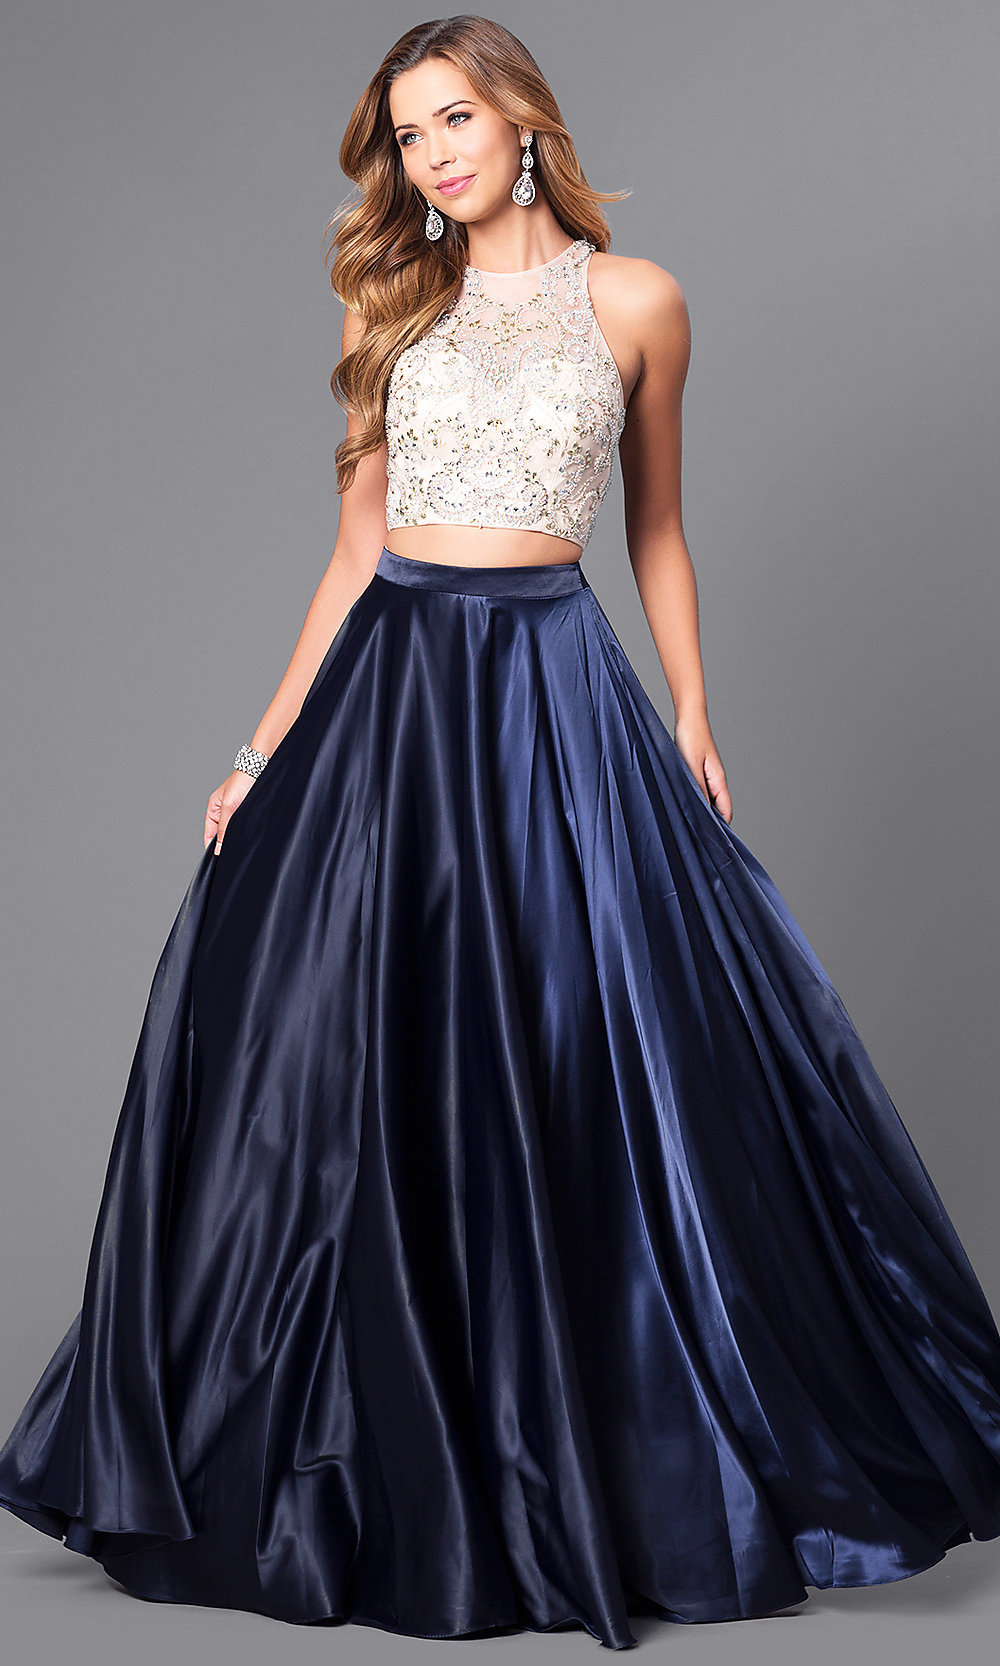 Jeweled Bodice Satin Two Piece Prom Dress Promgirl